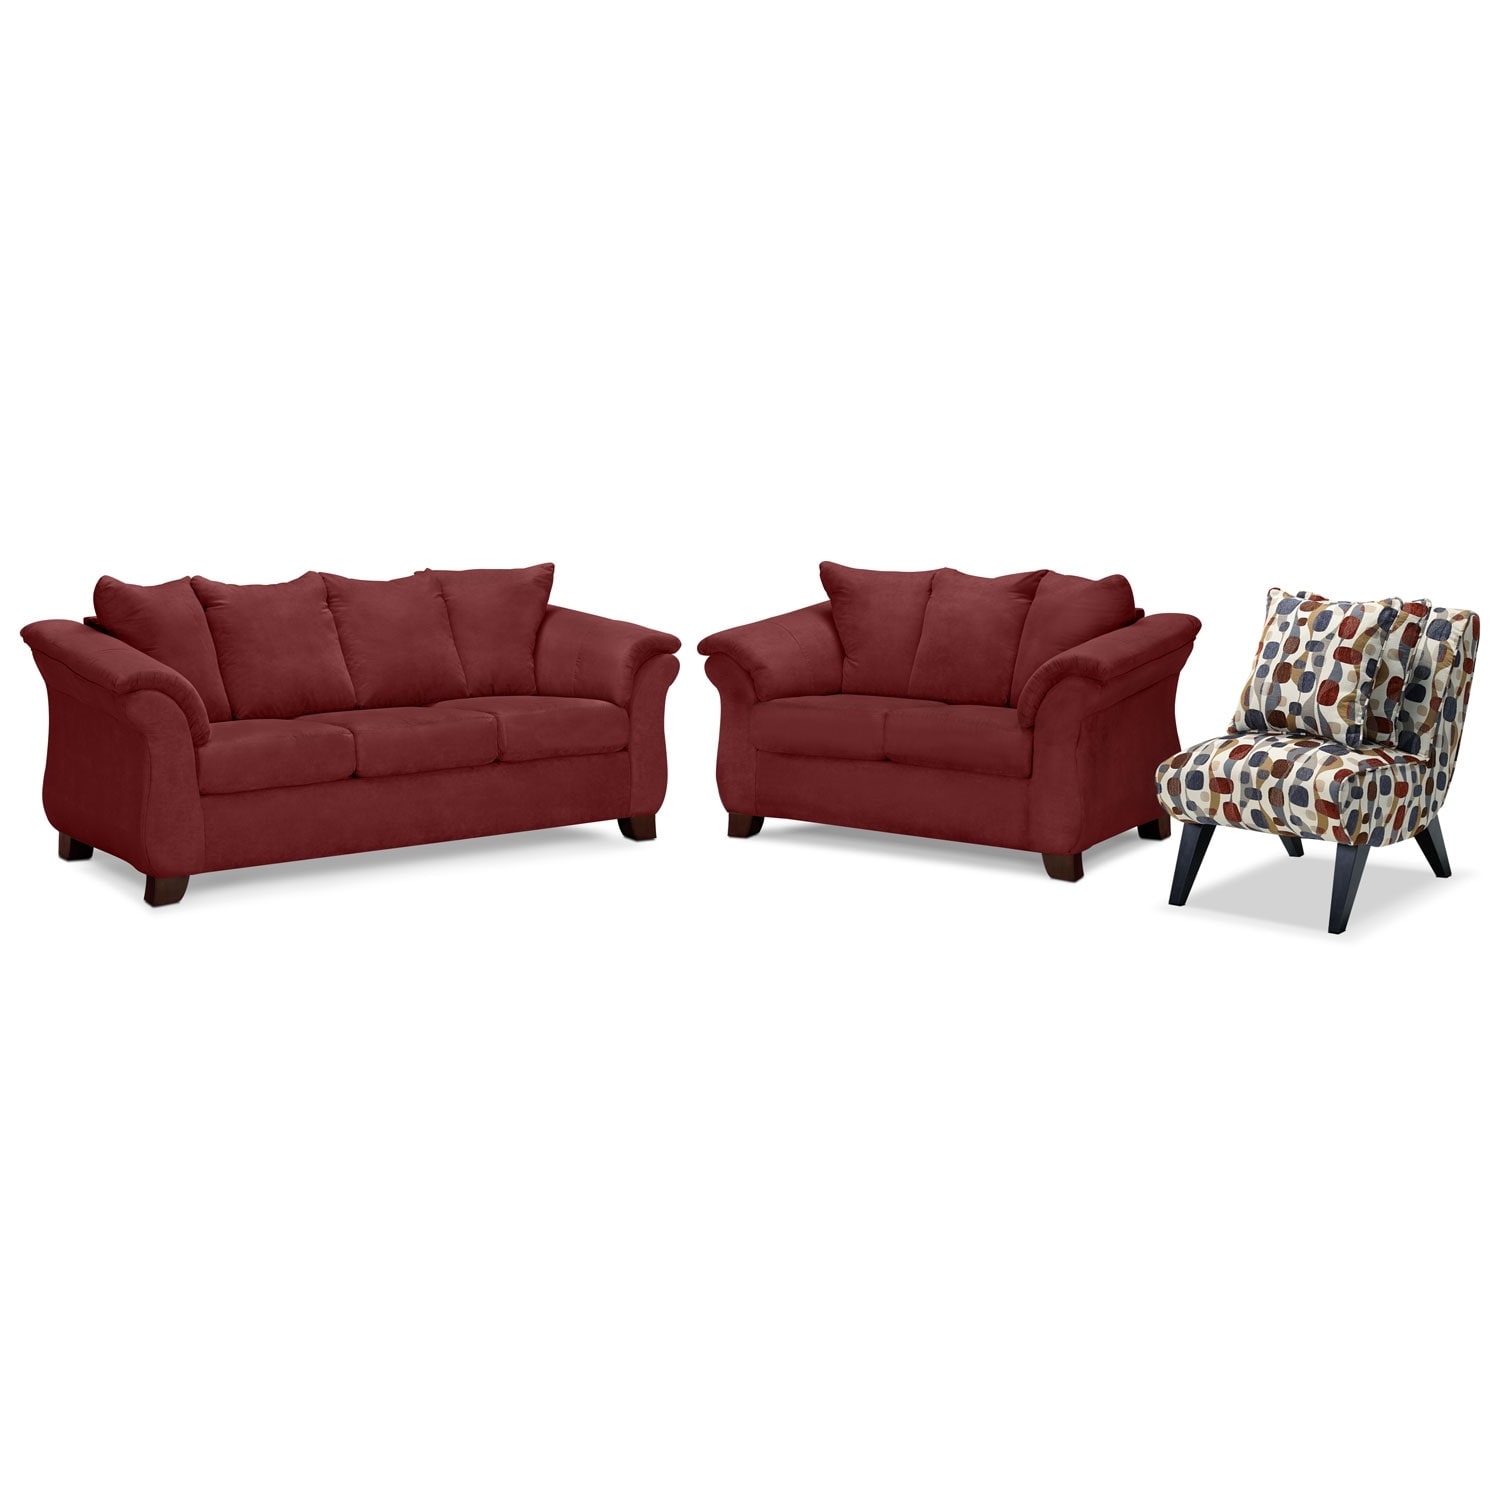 Living Room Furniture - Adrian Red 3 Pc. Living Room w/ Accent Chair